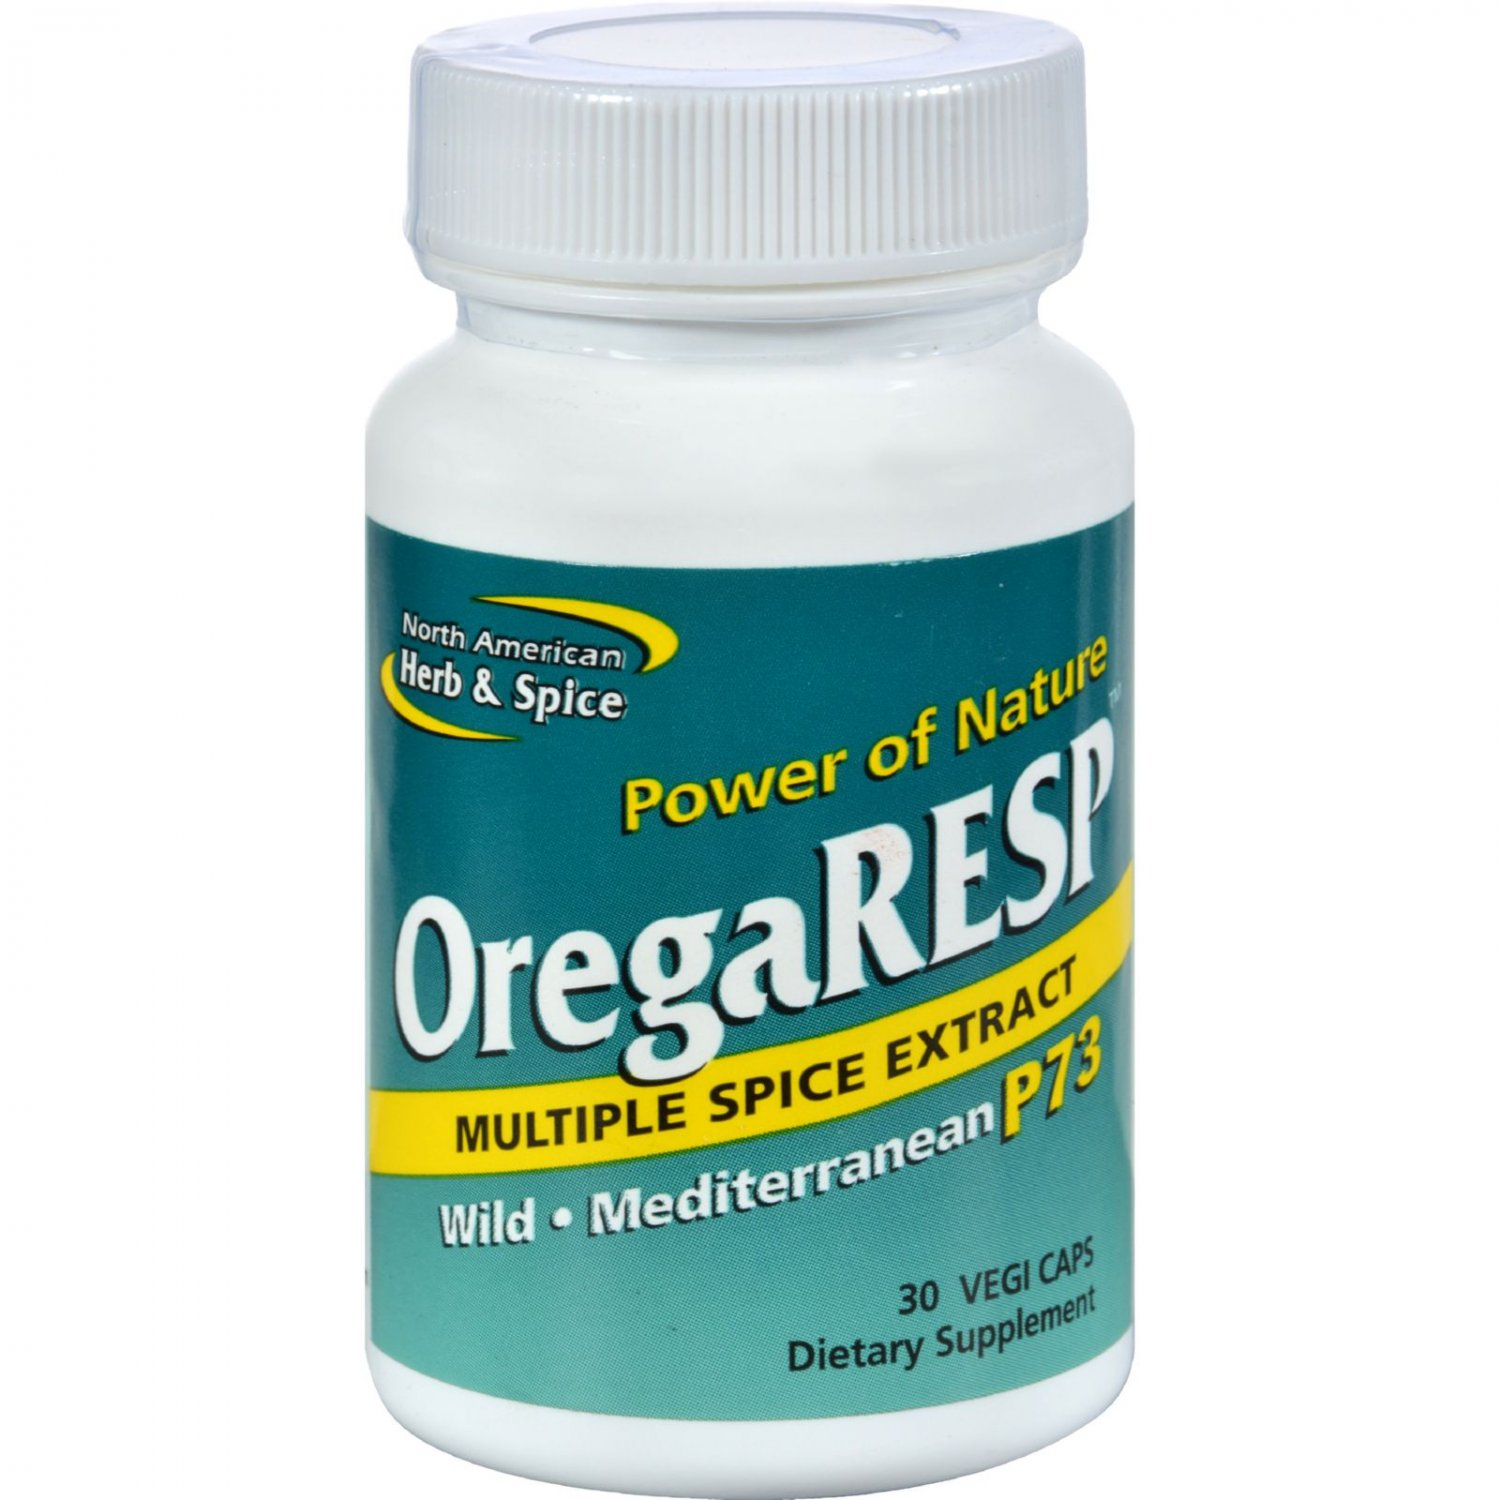 North American Herb and Spice OregaRESP - 30 Vegetarian Capsules